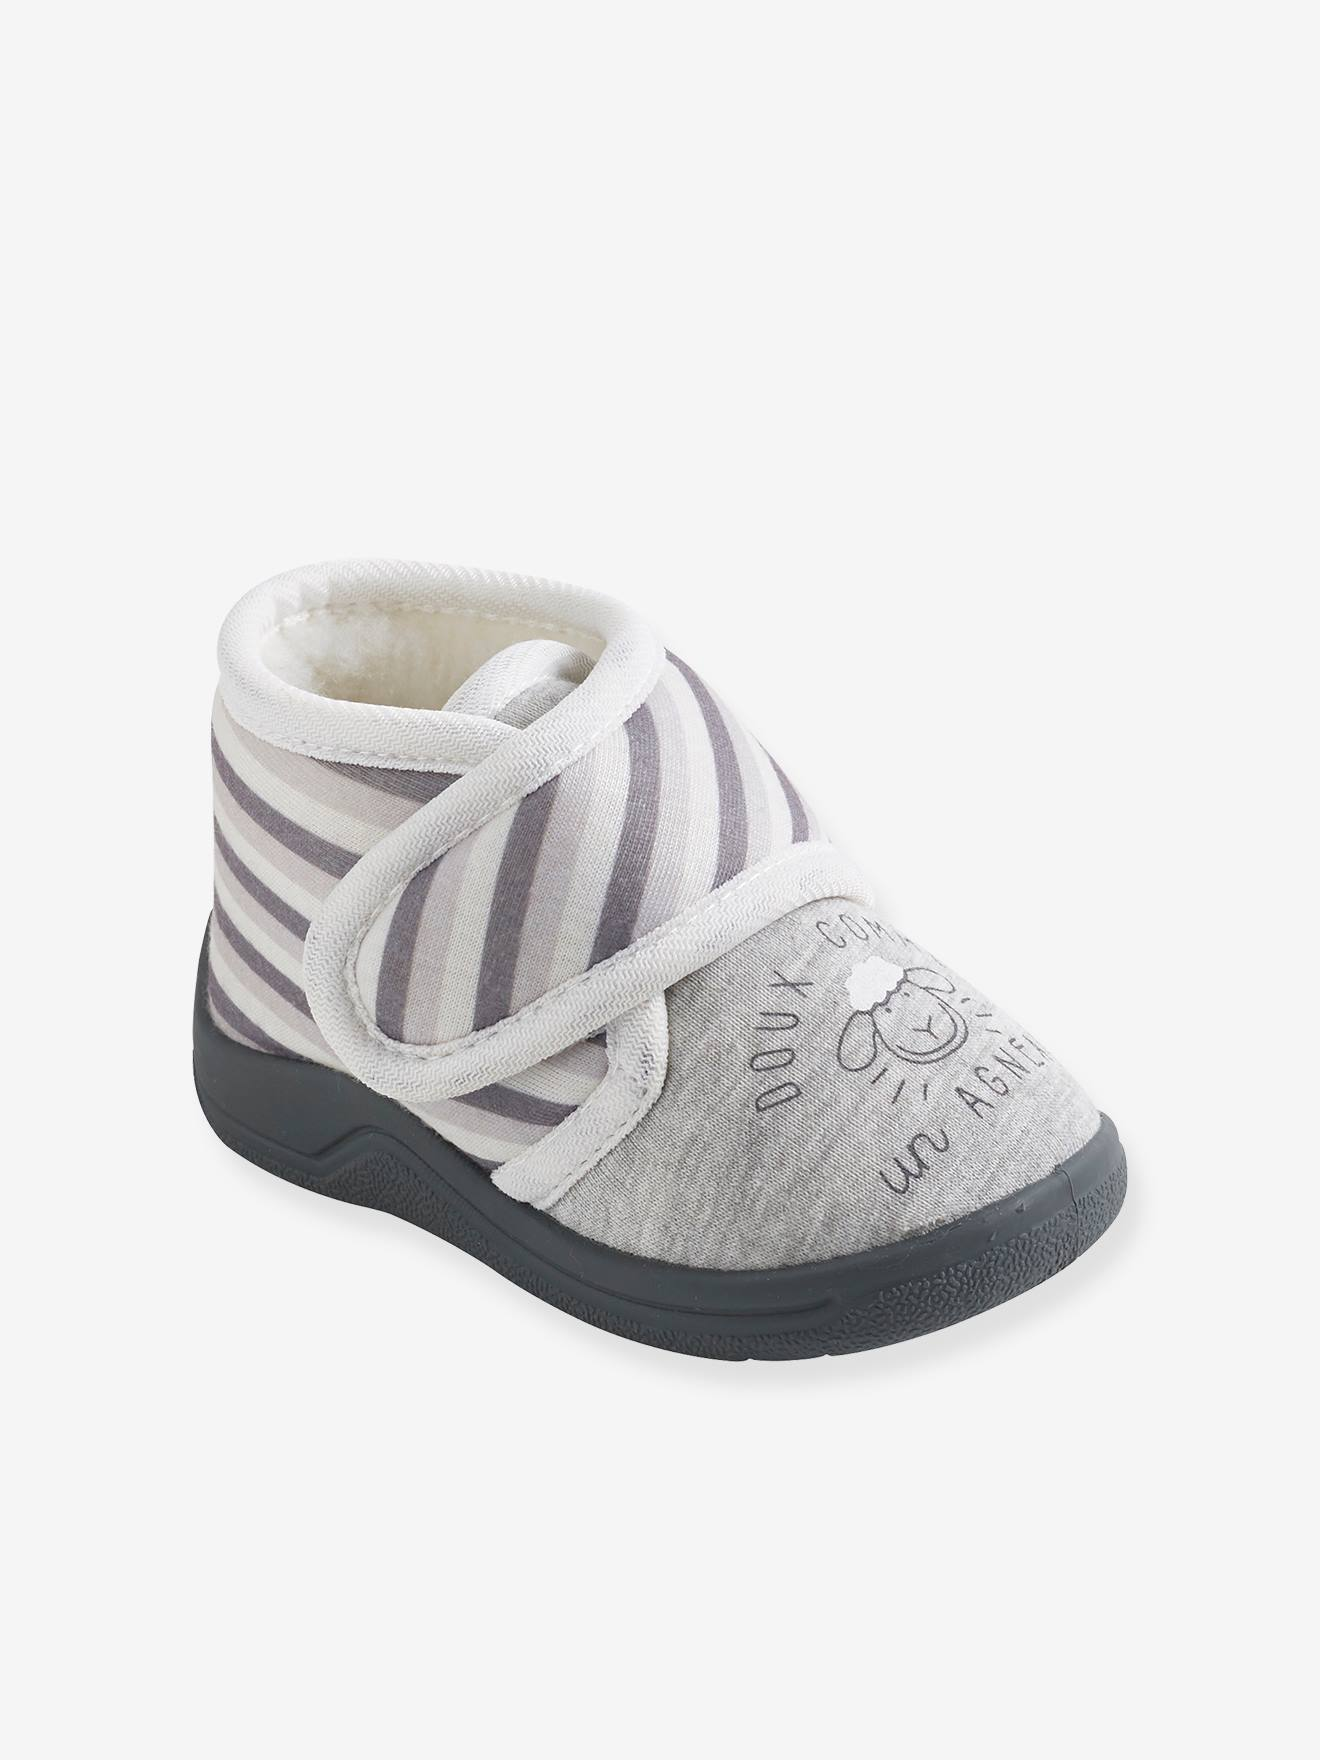 Baby Shoes with Fur for Boys - grey